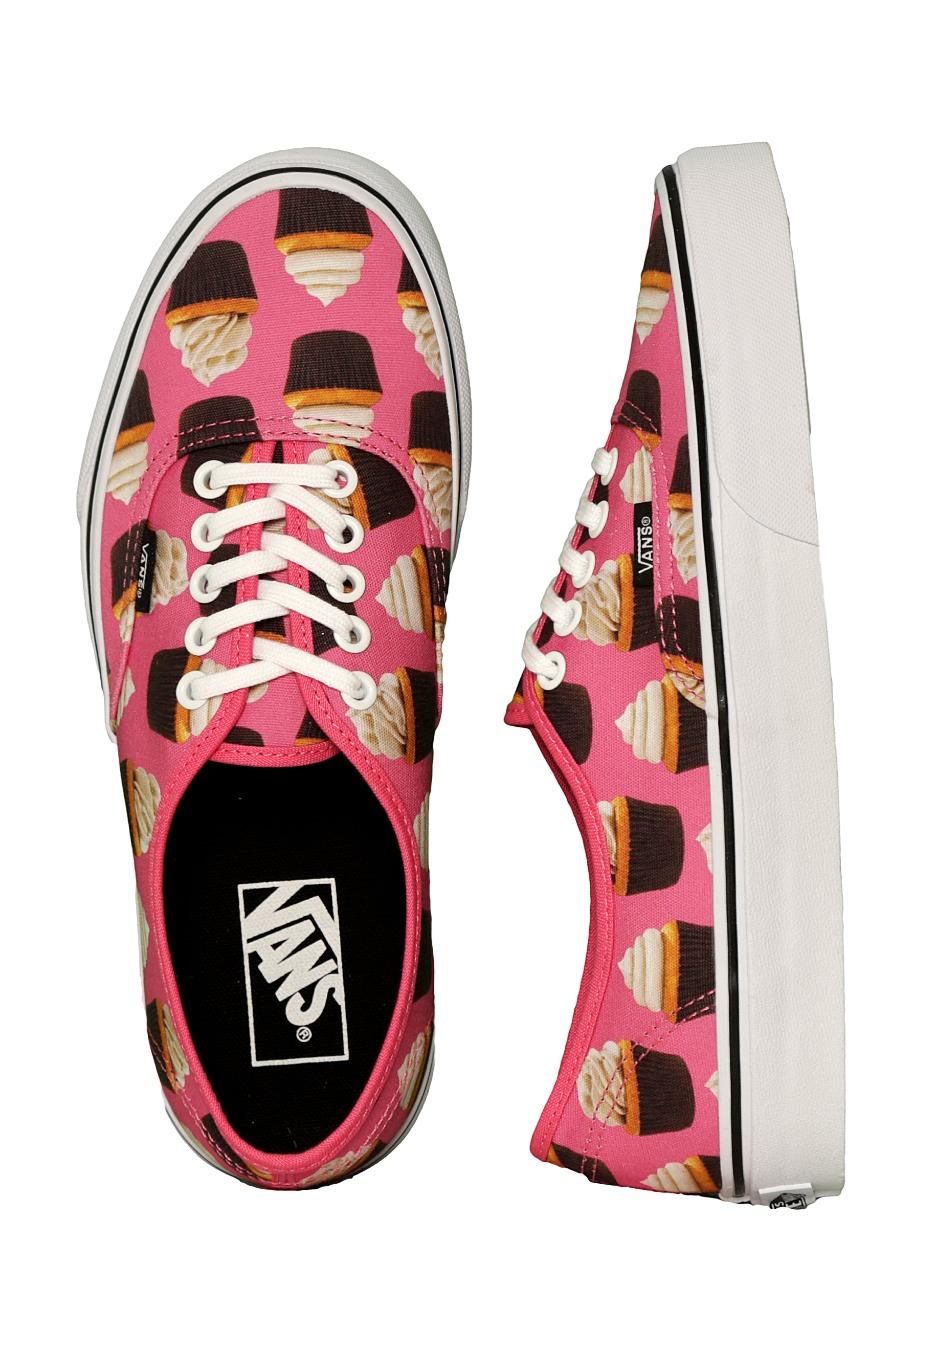 4ec62031546d6a Vans - Authentic Late Night Hot Pink Cupcakes - Girl Shoes - Impericon.com  UK